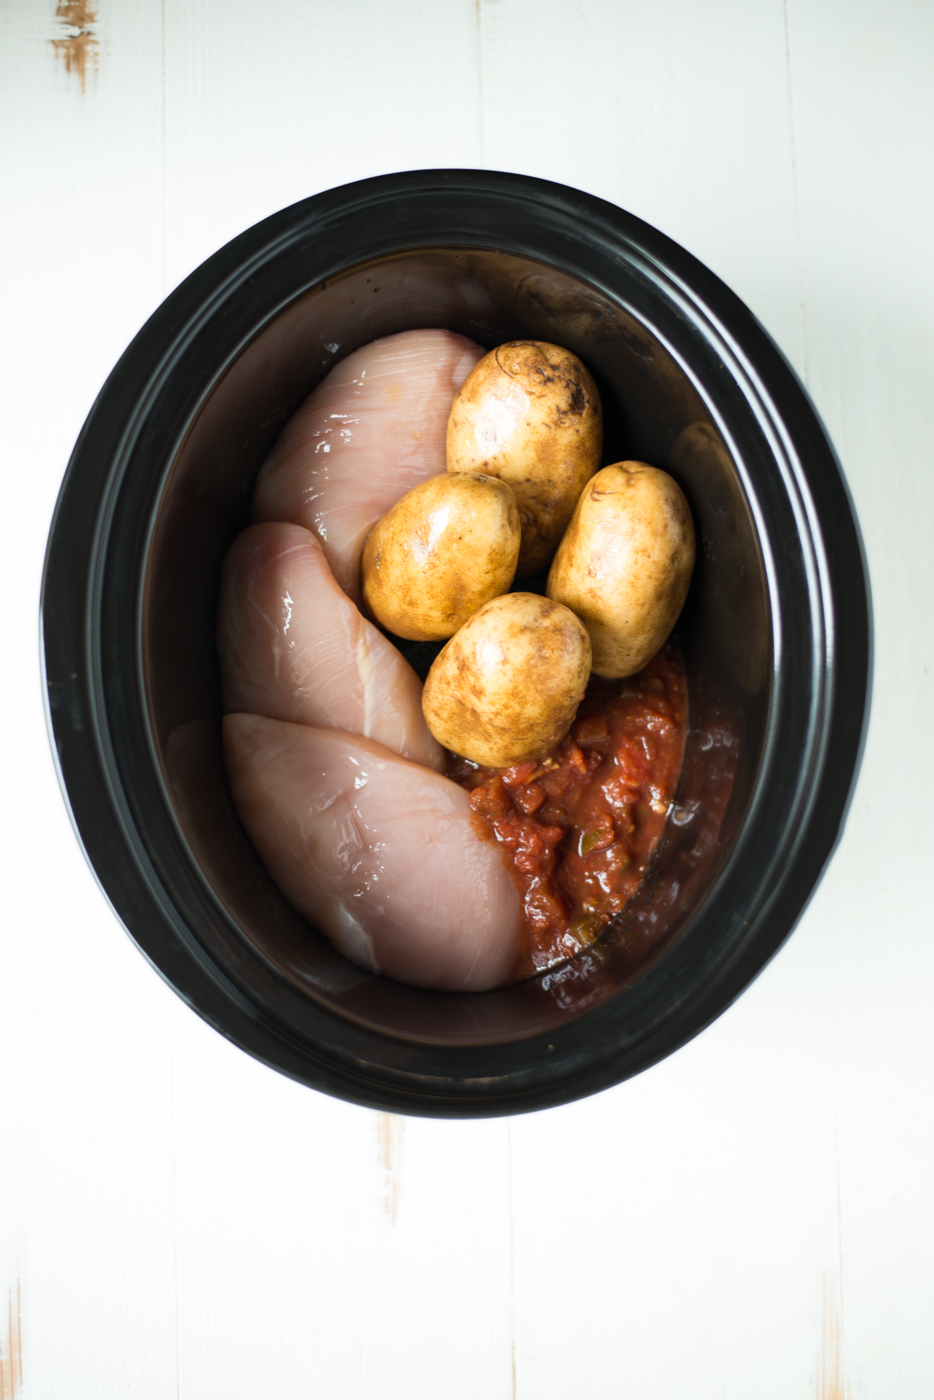 3-Ingredient Crockpot Salsa Chicken Stuffed Potatoes is the easiest, most delicious, craziest simple recipe you'll find anywhere. What's more, everything cooks at once in the slow cooker, so prep is super fast and cleanup is a breeze! A gluten-free, dairy-free, grain-free, paleo, and Whole30 friendly recipe #realfoodwholelife #realfoodwholeliferecipe #glutenfree #glutenfreerecipe #dairyfree #dairyfreerecipe #healthy #healthyrecipe #easyrecipe #quickrecipe #cleaneating #crockpot #slowcooker #crockpotrecipe #slowcookerrecipe